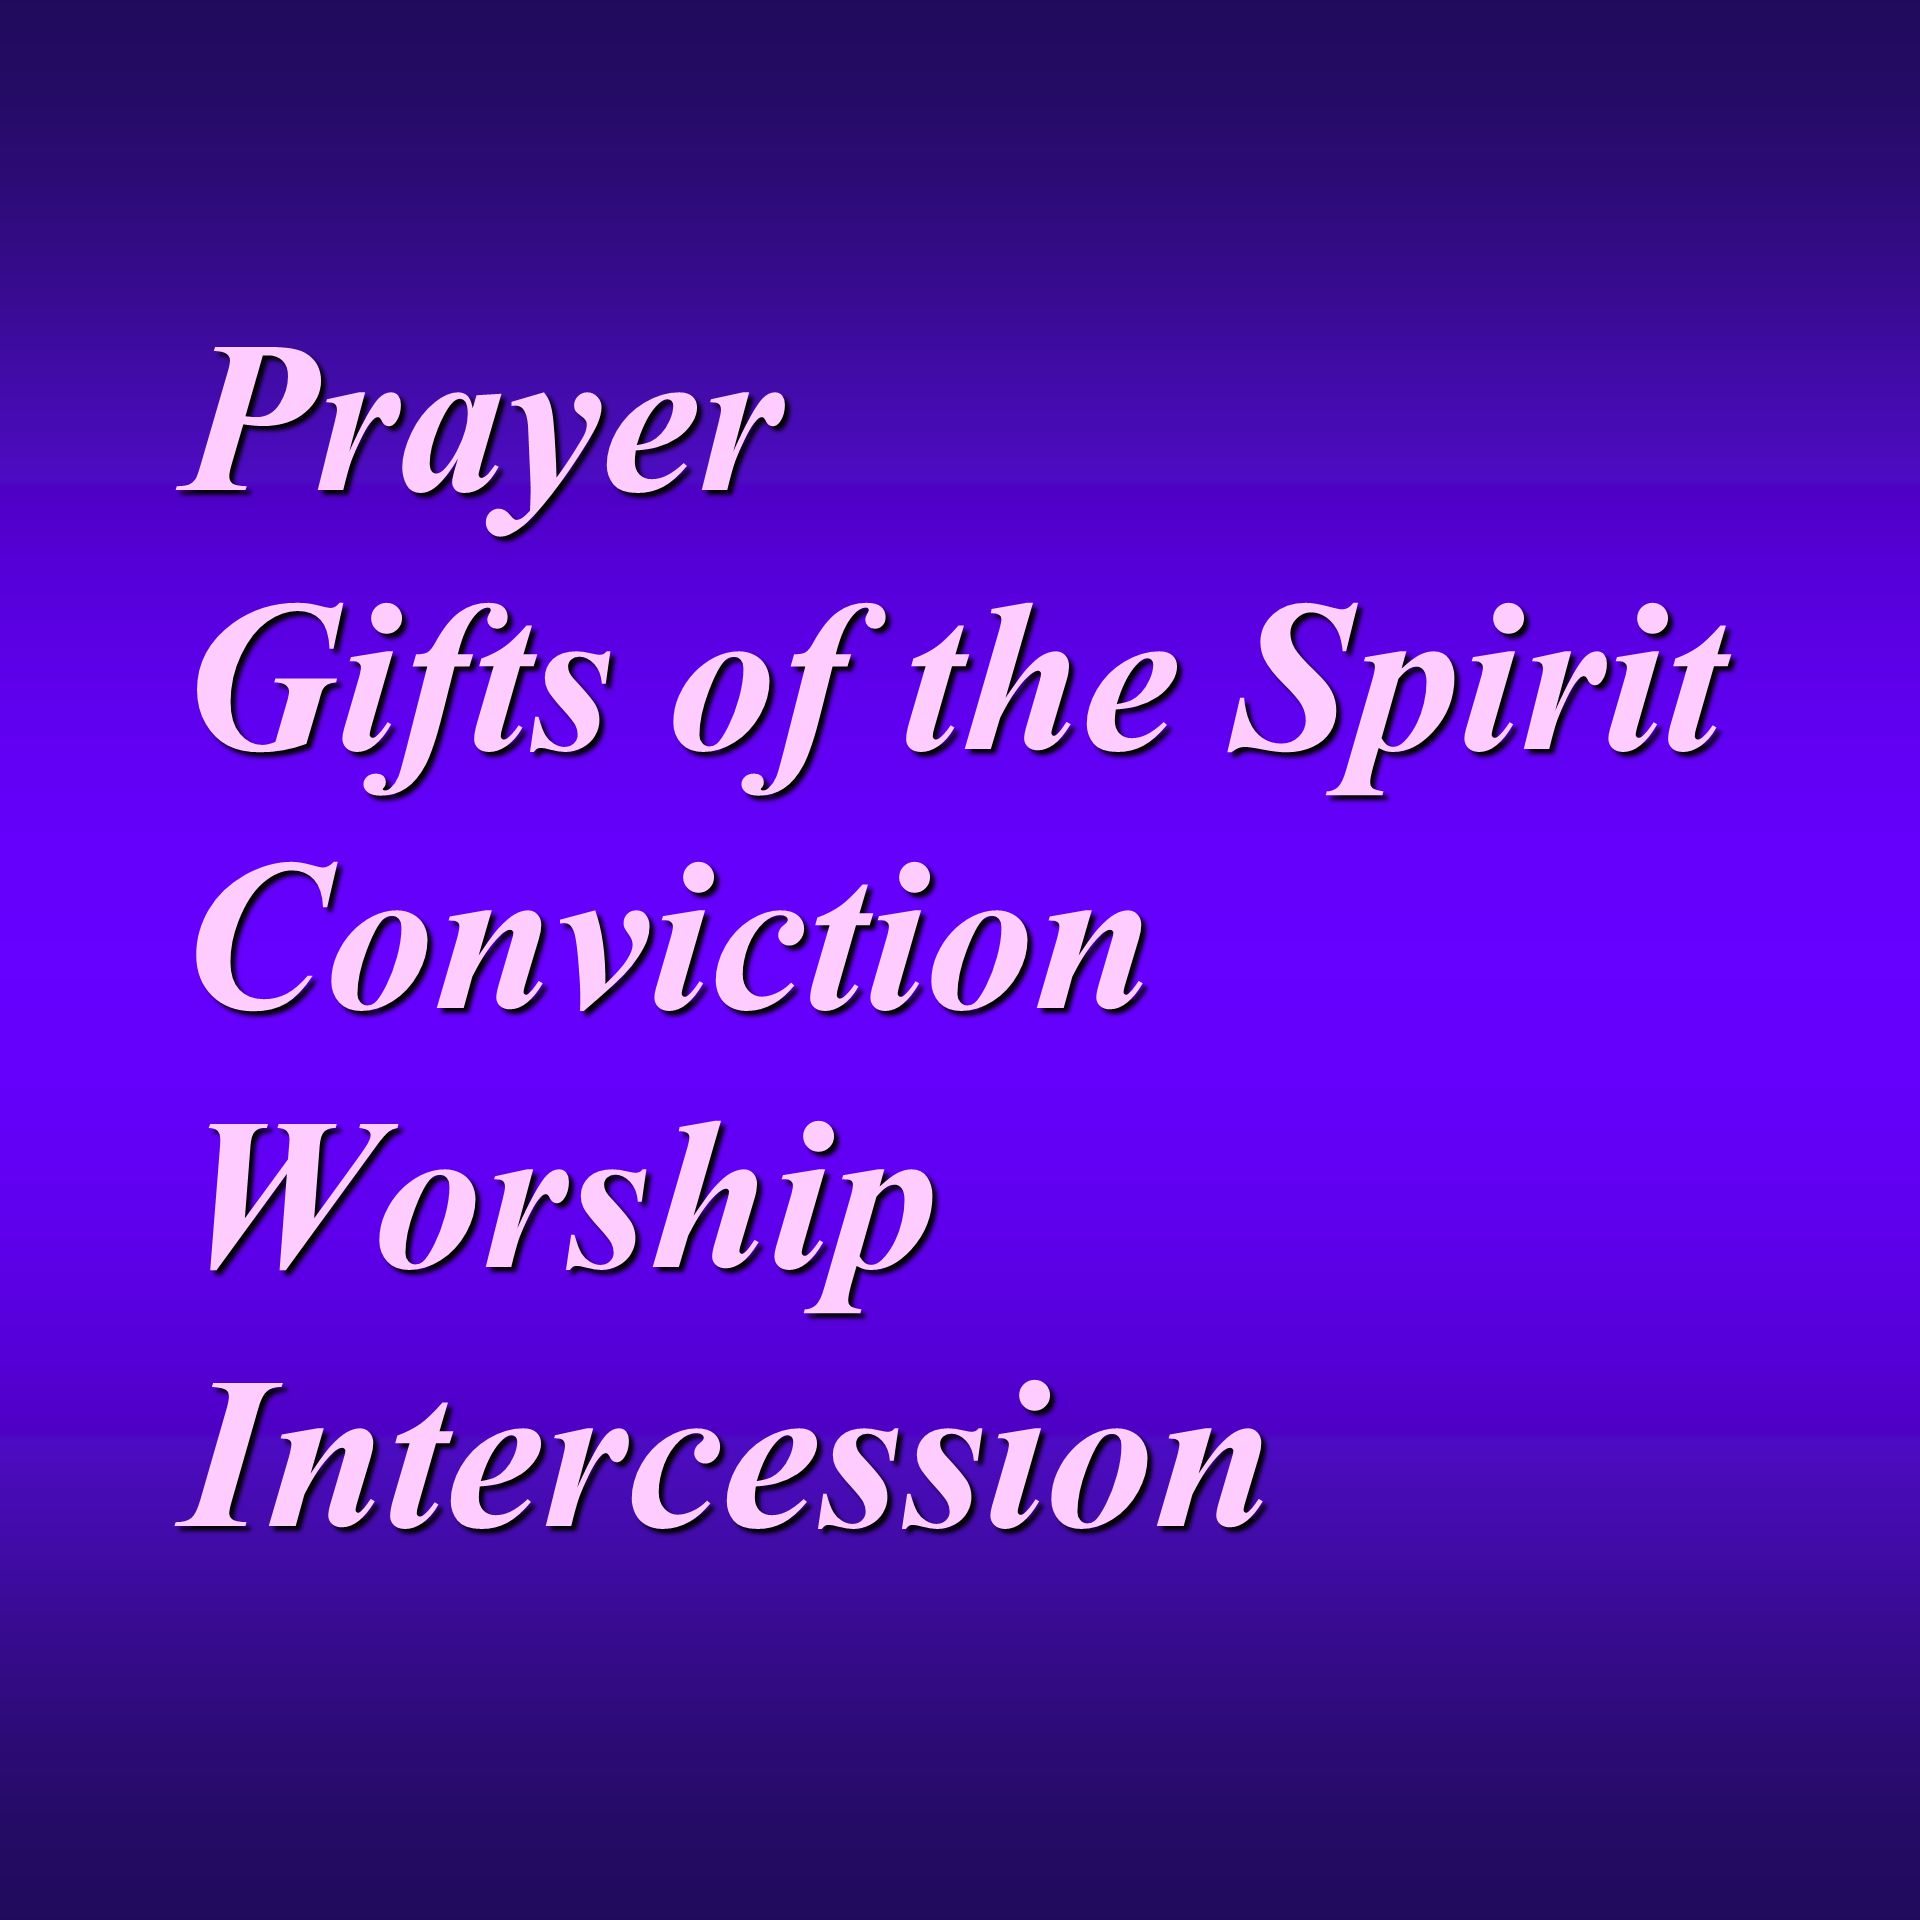 Prayer Gifts of the Spirit Conviction Worship Intercession